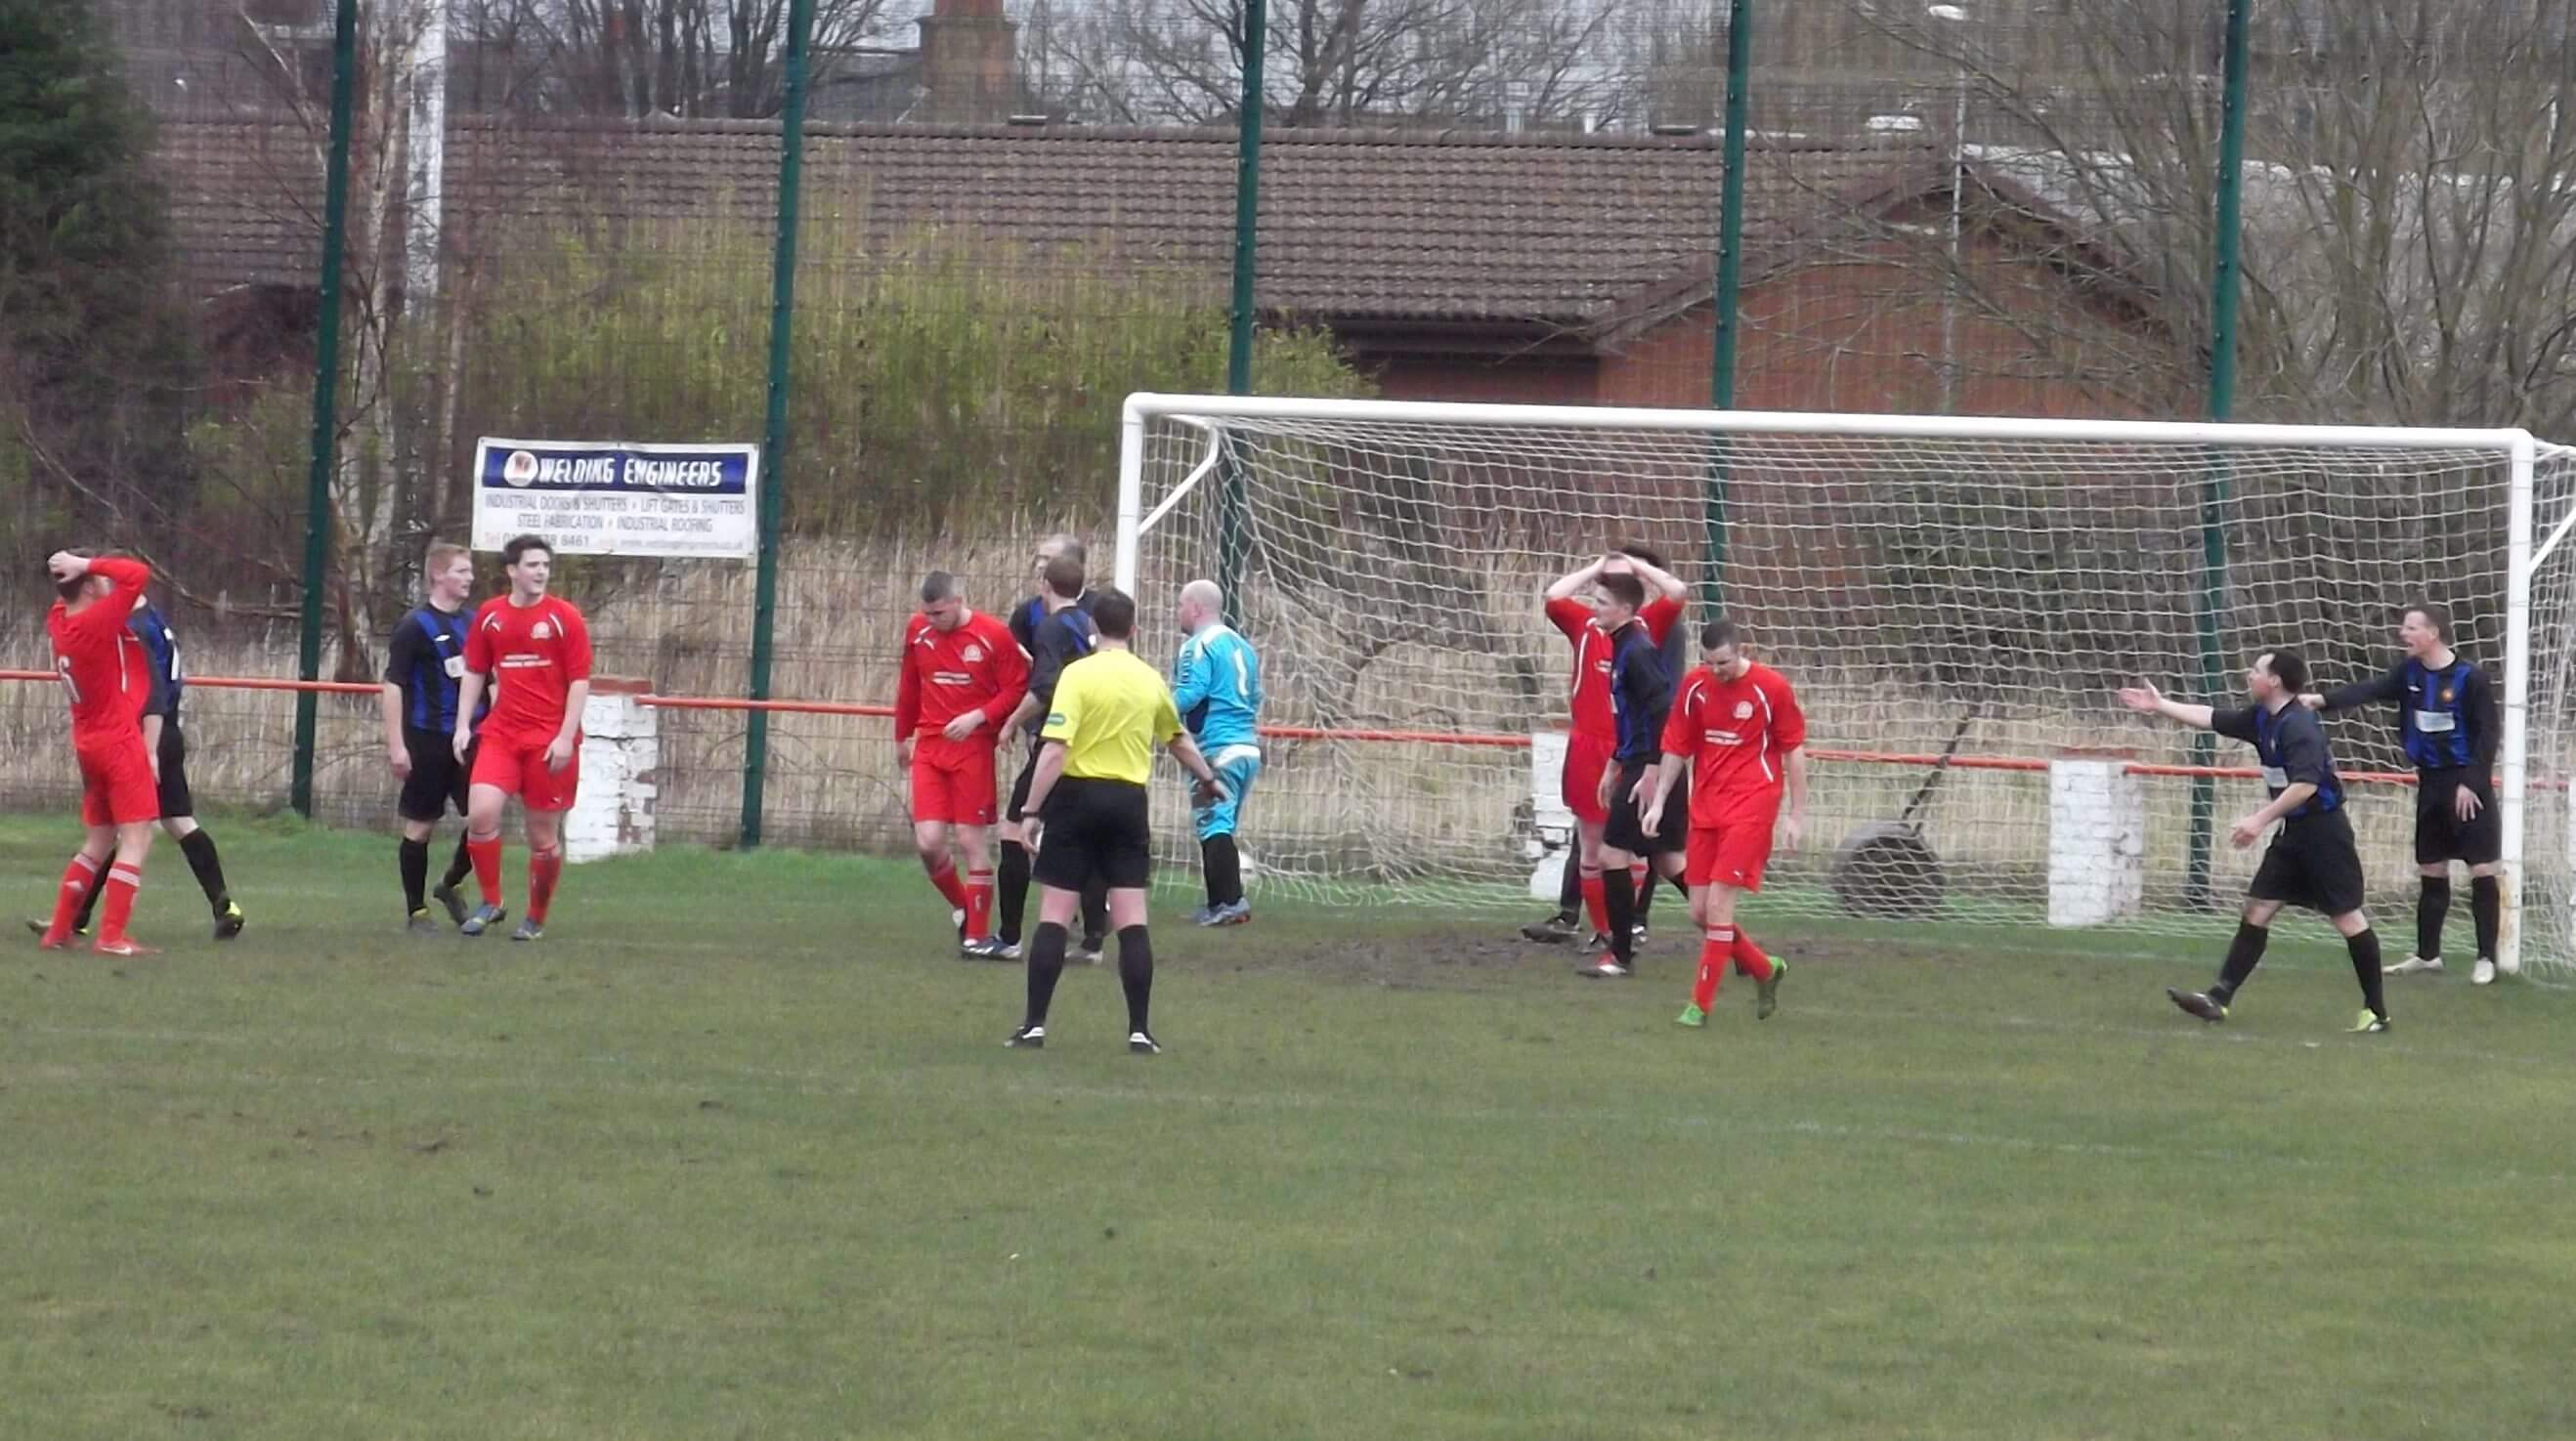 Perthshire can't believe it as a header goes past